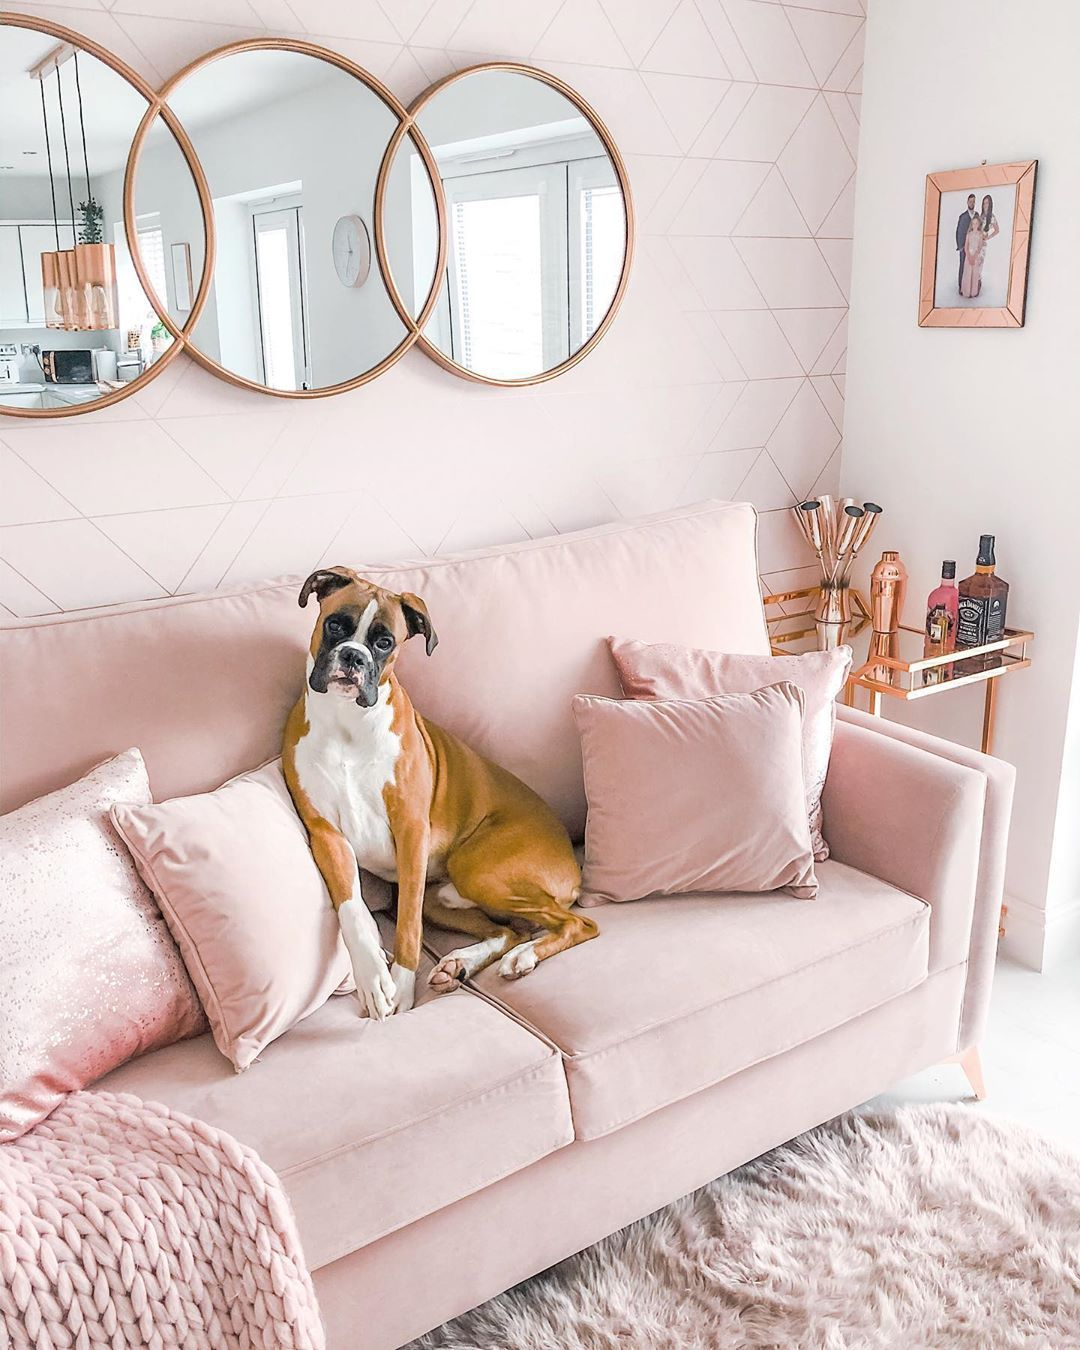 Featuring a blush backdrop highlighted with clean angular